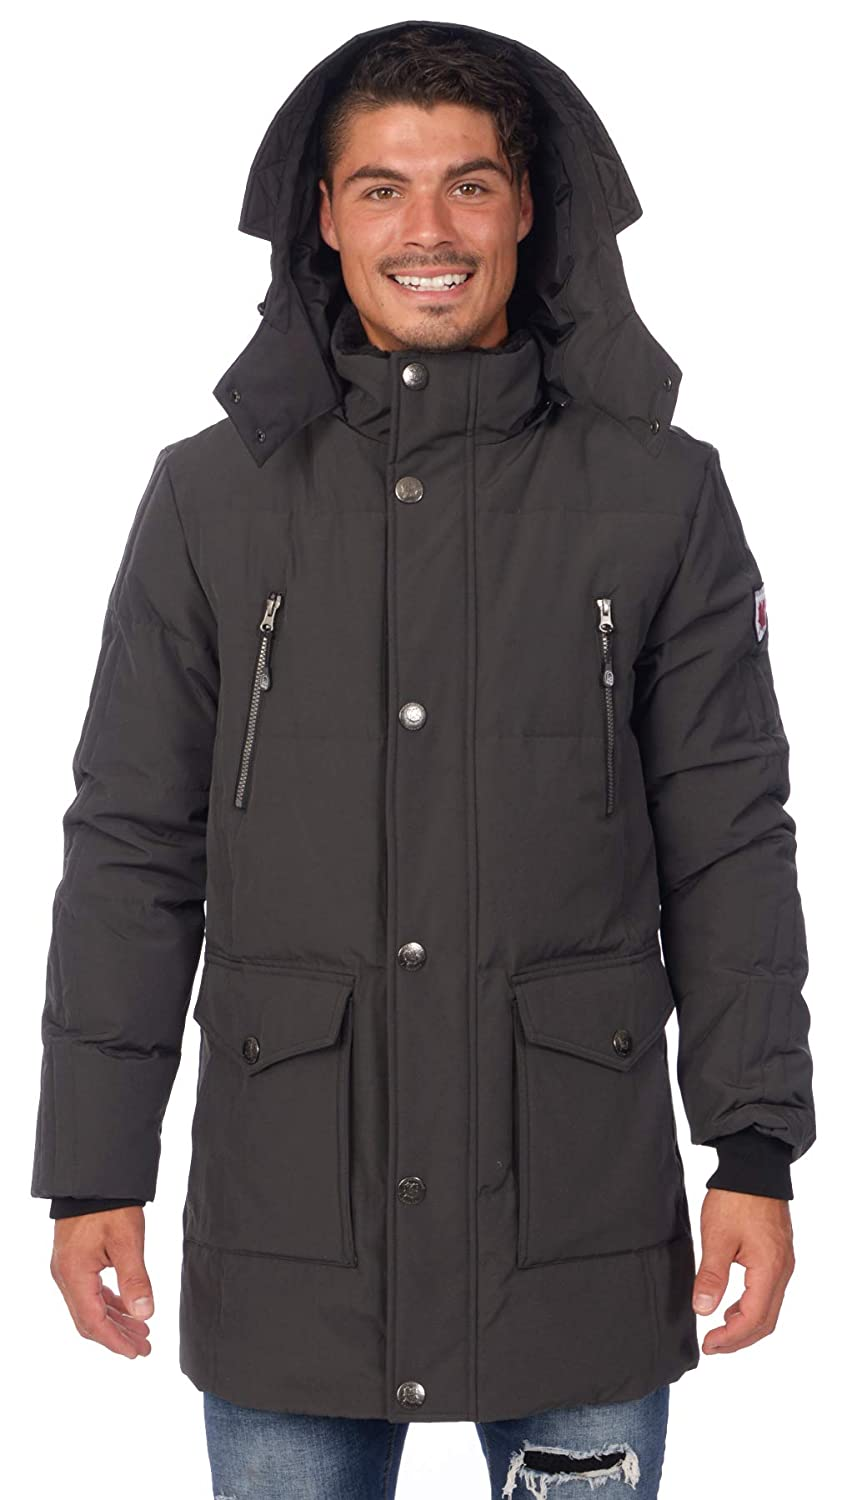 Polar Glacier Men's Hooded Premium Down Parka